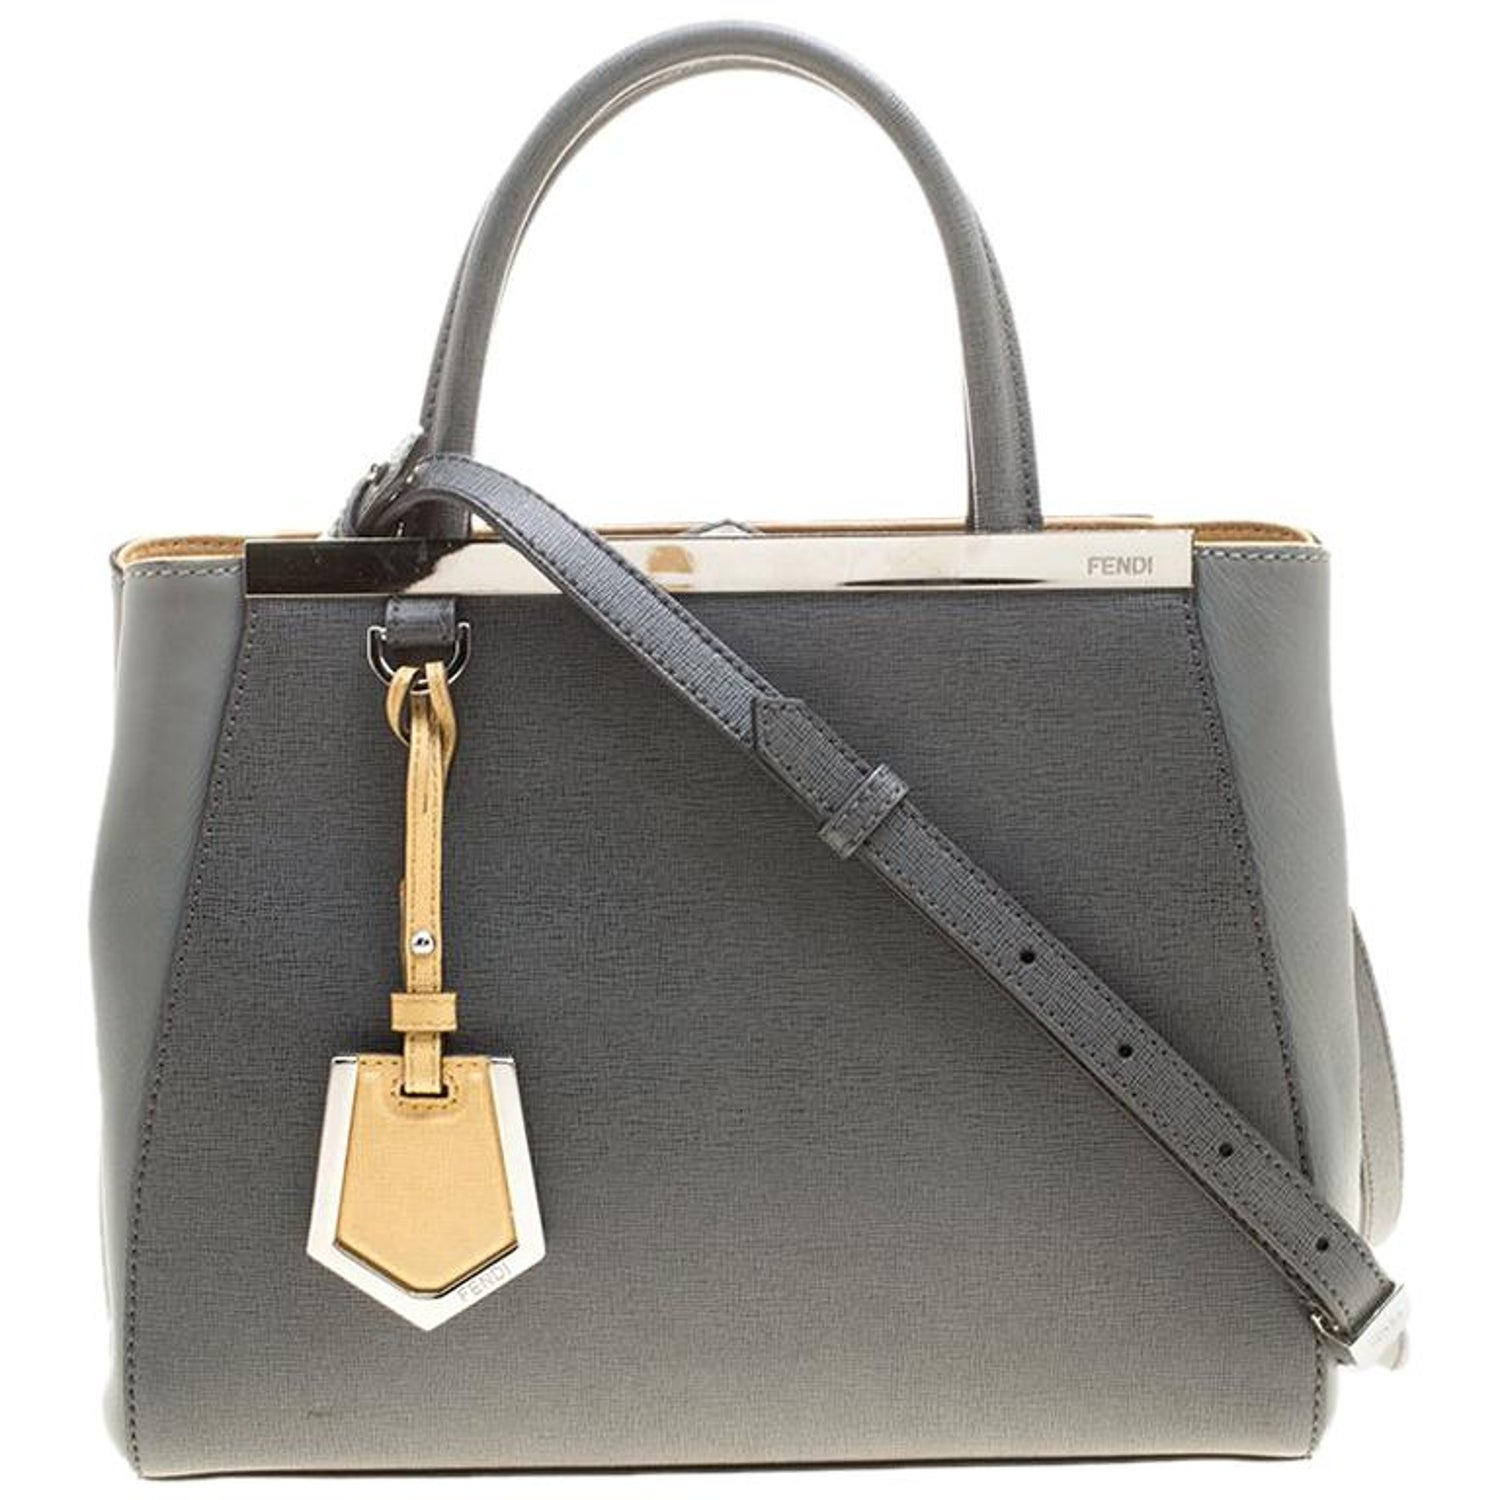 1f4ca03b75f3 Fendi Grey Two Tone Saffiano Leather Small 2Jours Tote For Sale at 1stdibs